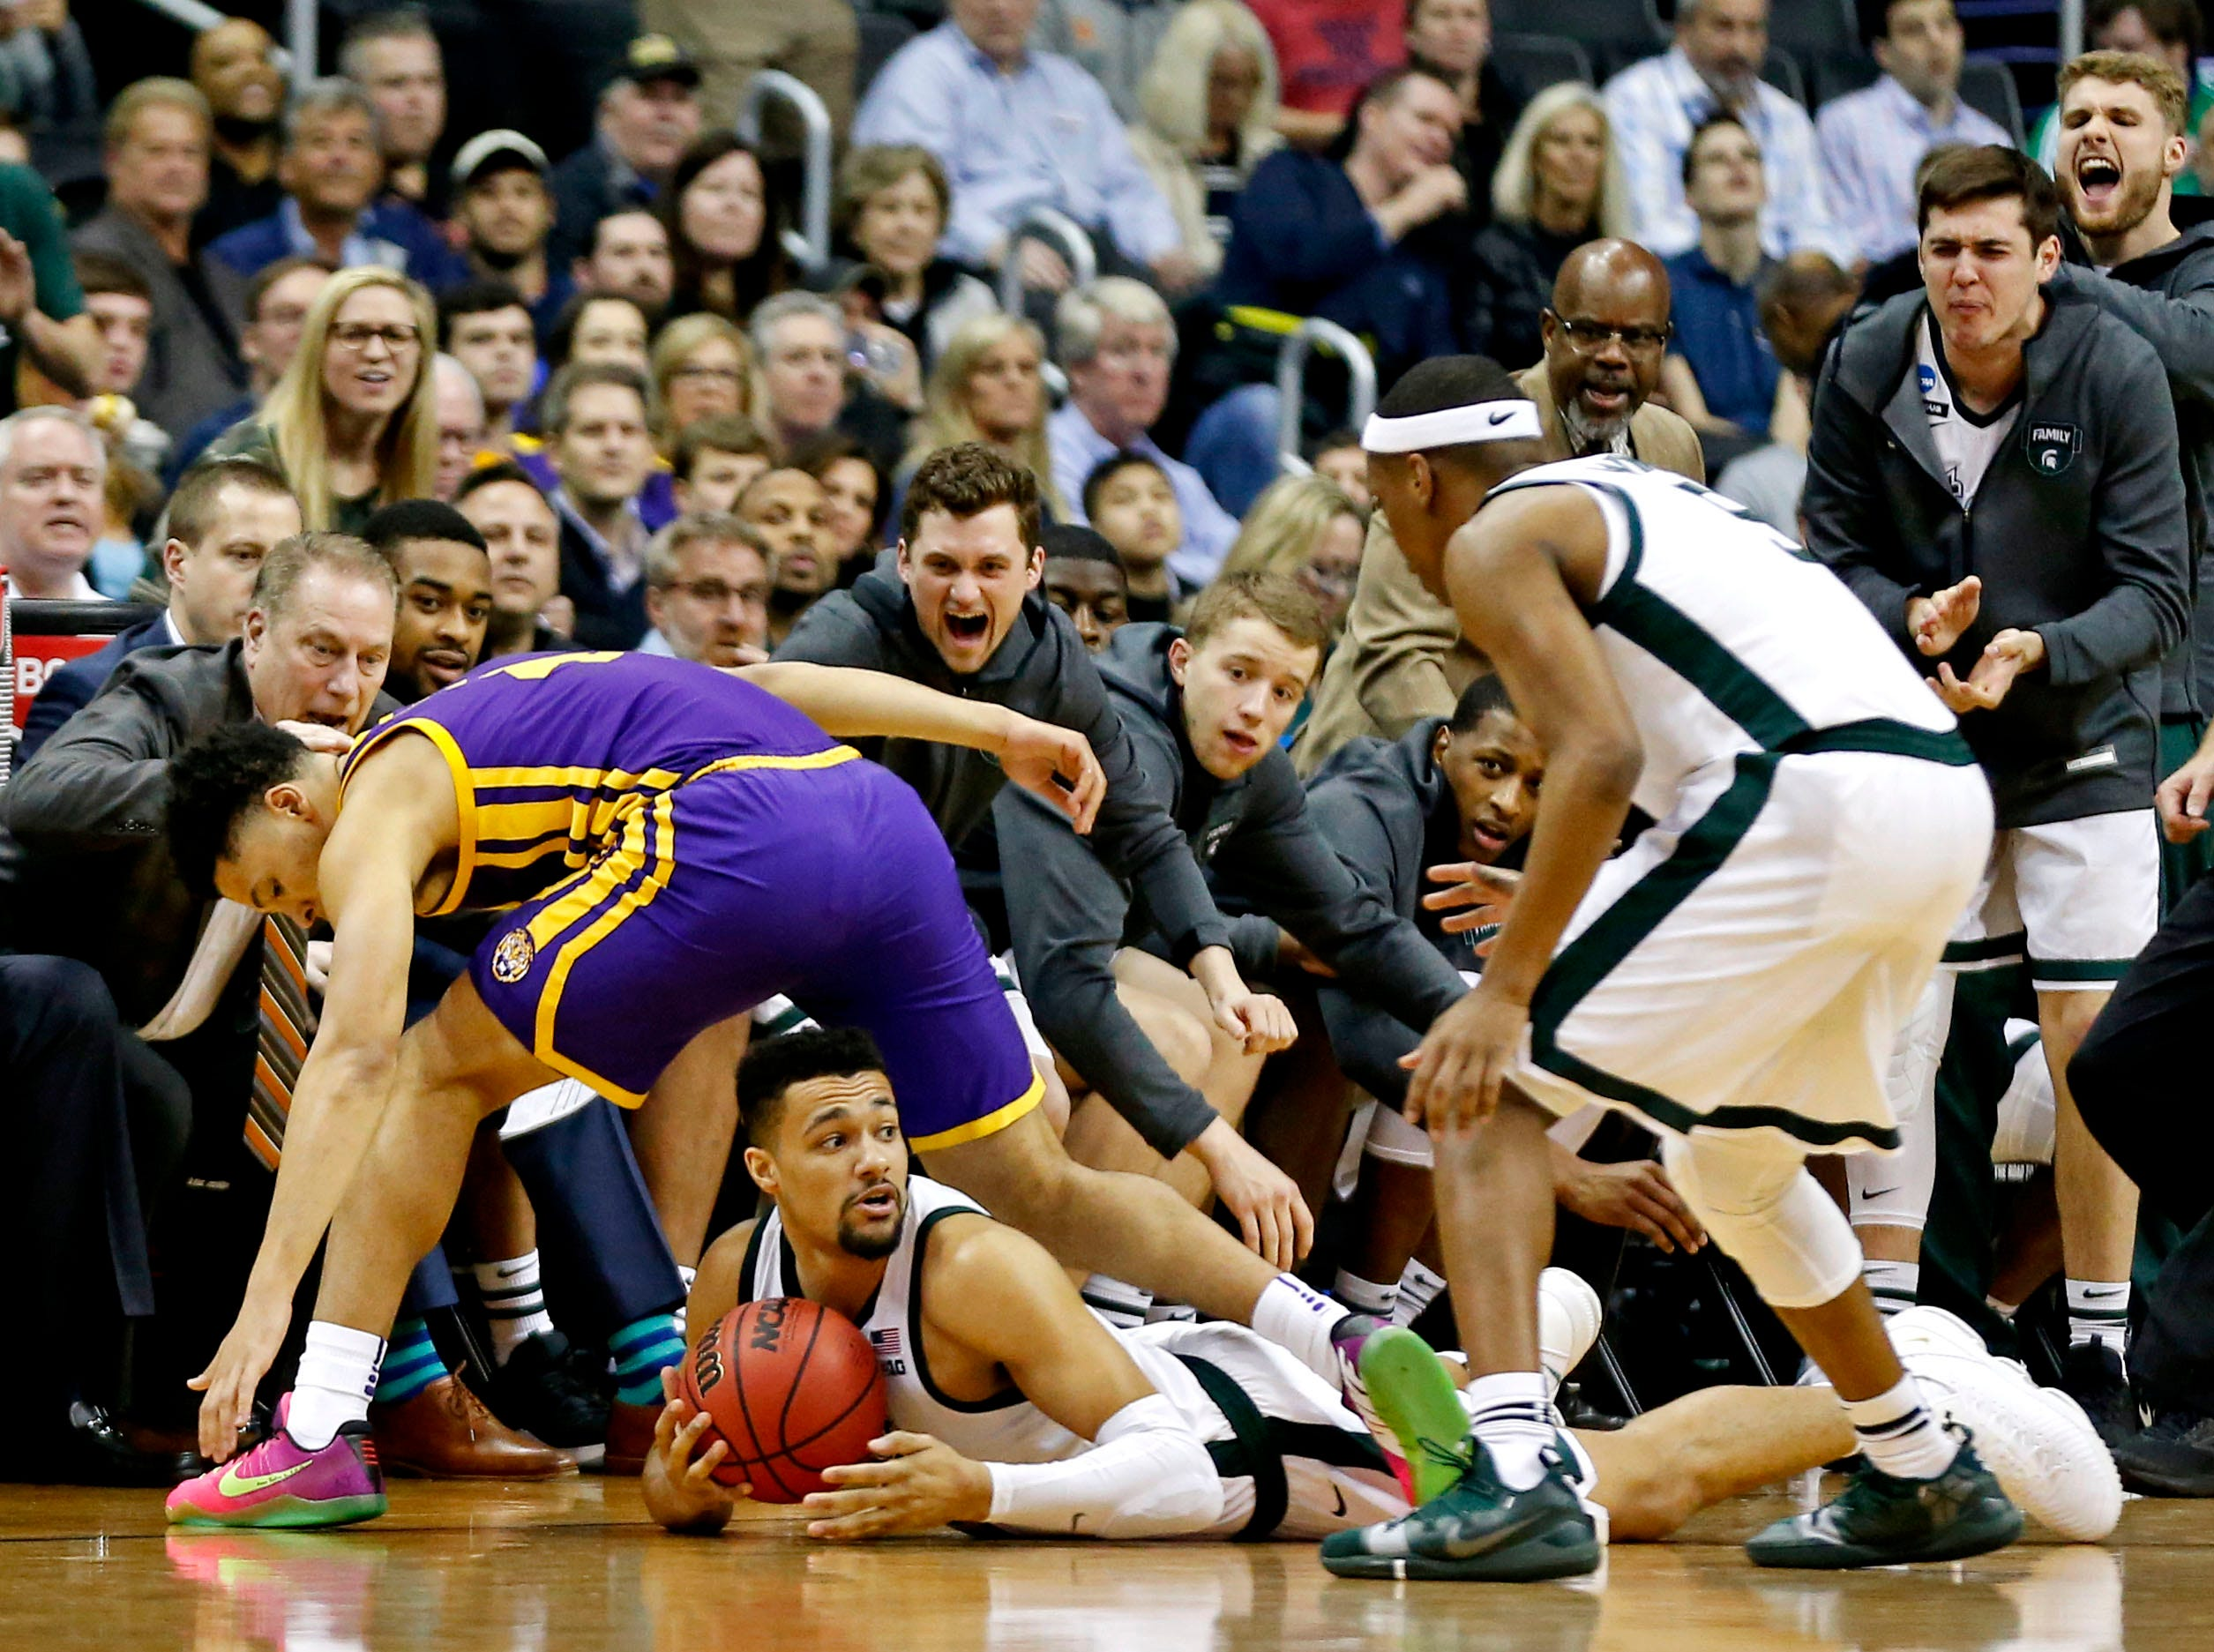 Mar 29, 2019; Washington, DC, USA; Michigan State Spartans forward Kenny Goins (25) and LSU Tigers guard Skylar Mays (4) got for a loose ball in the semifinals of the east regional of the 2019 NCAA Tournament at Capital One Arena. Mandatory Credit: Amber Searls-USA TODAY Sports